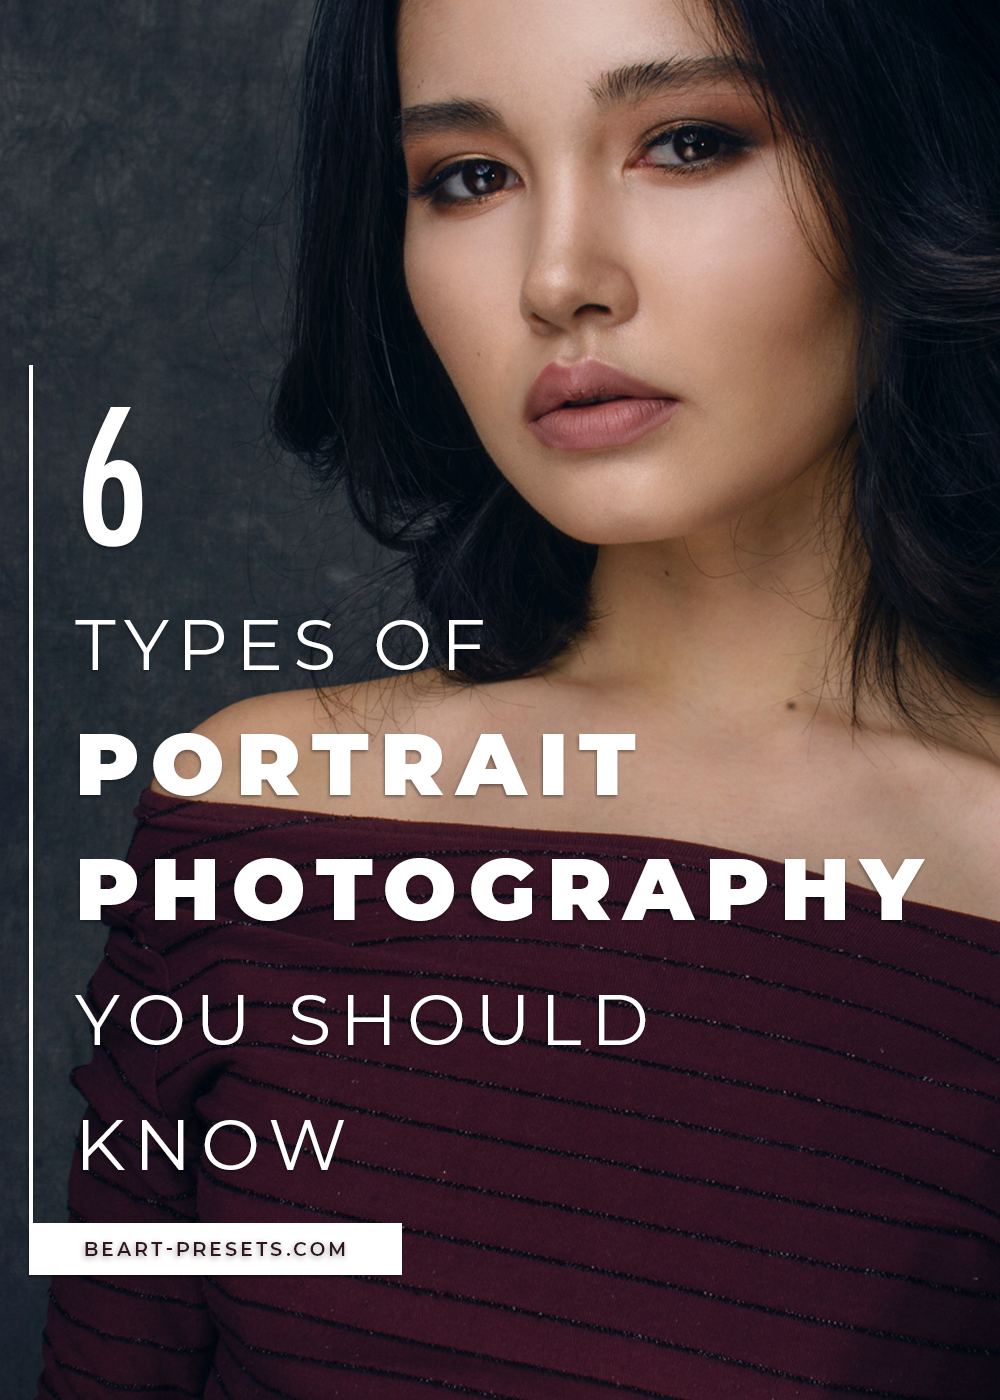 6 types of portrait photography